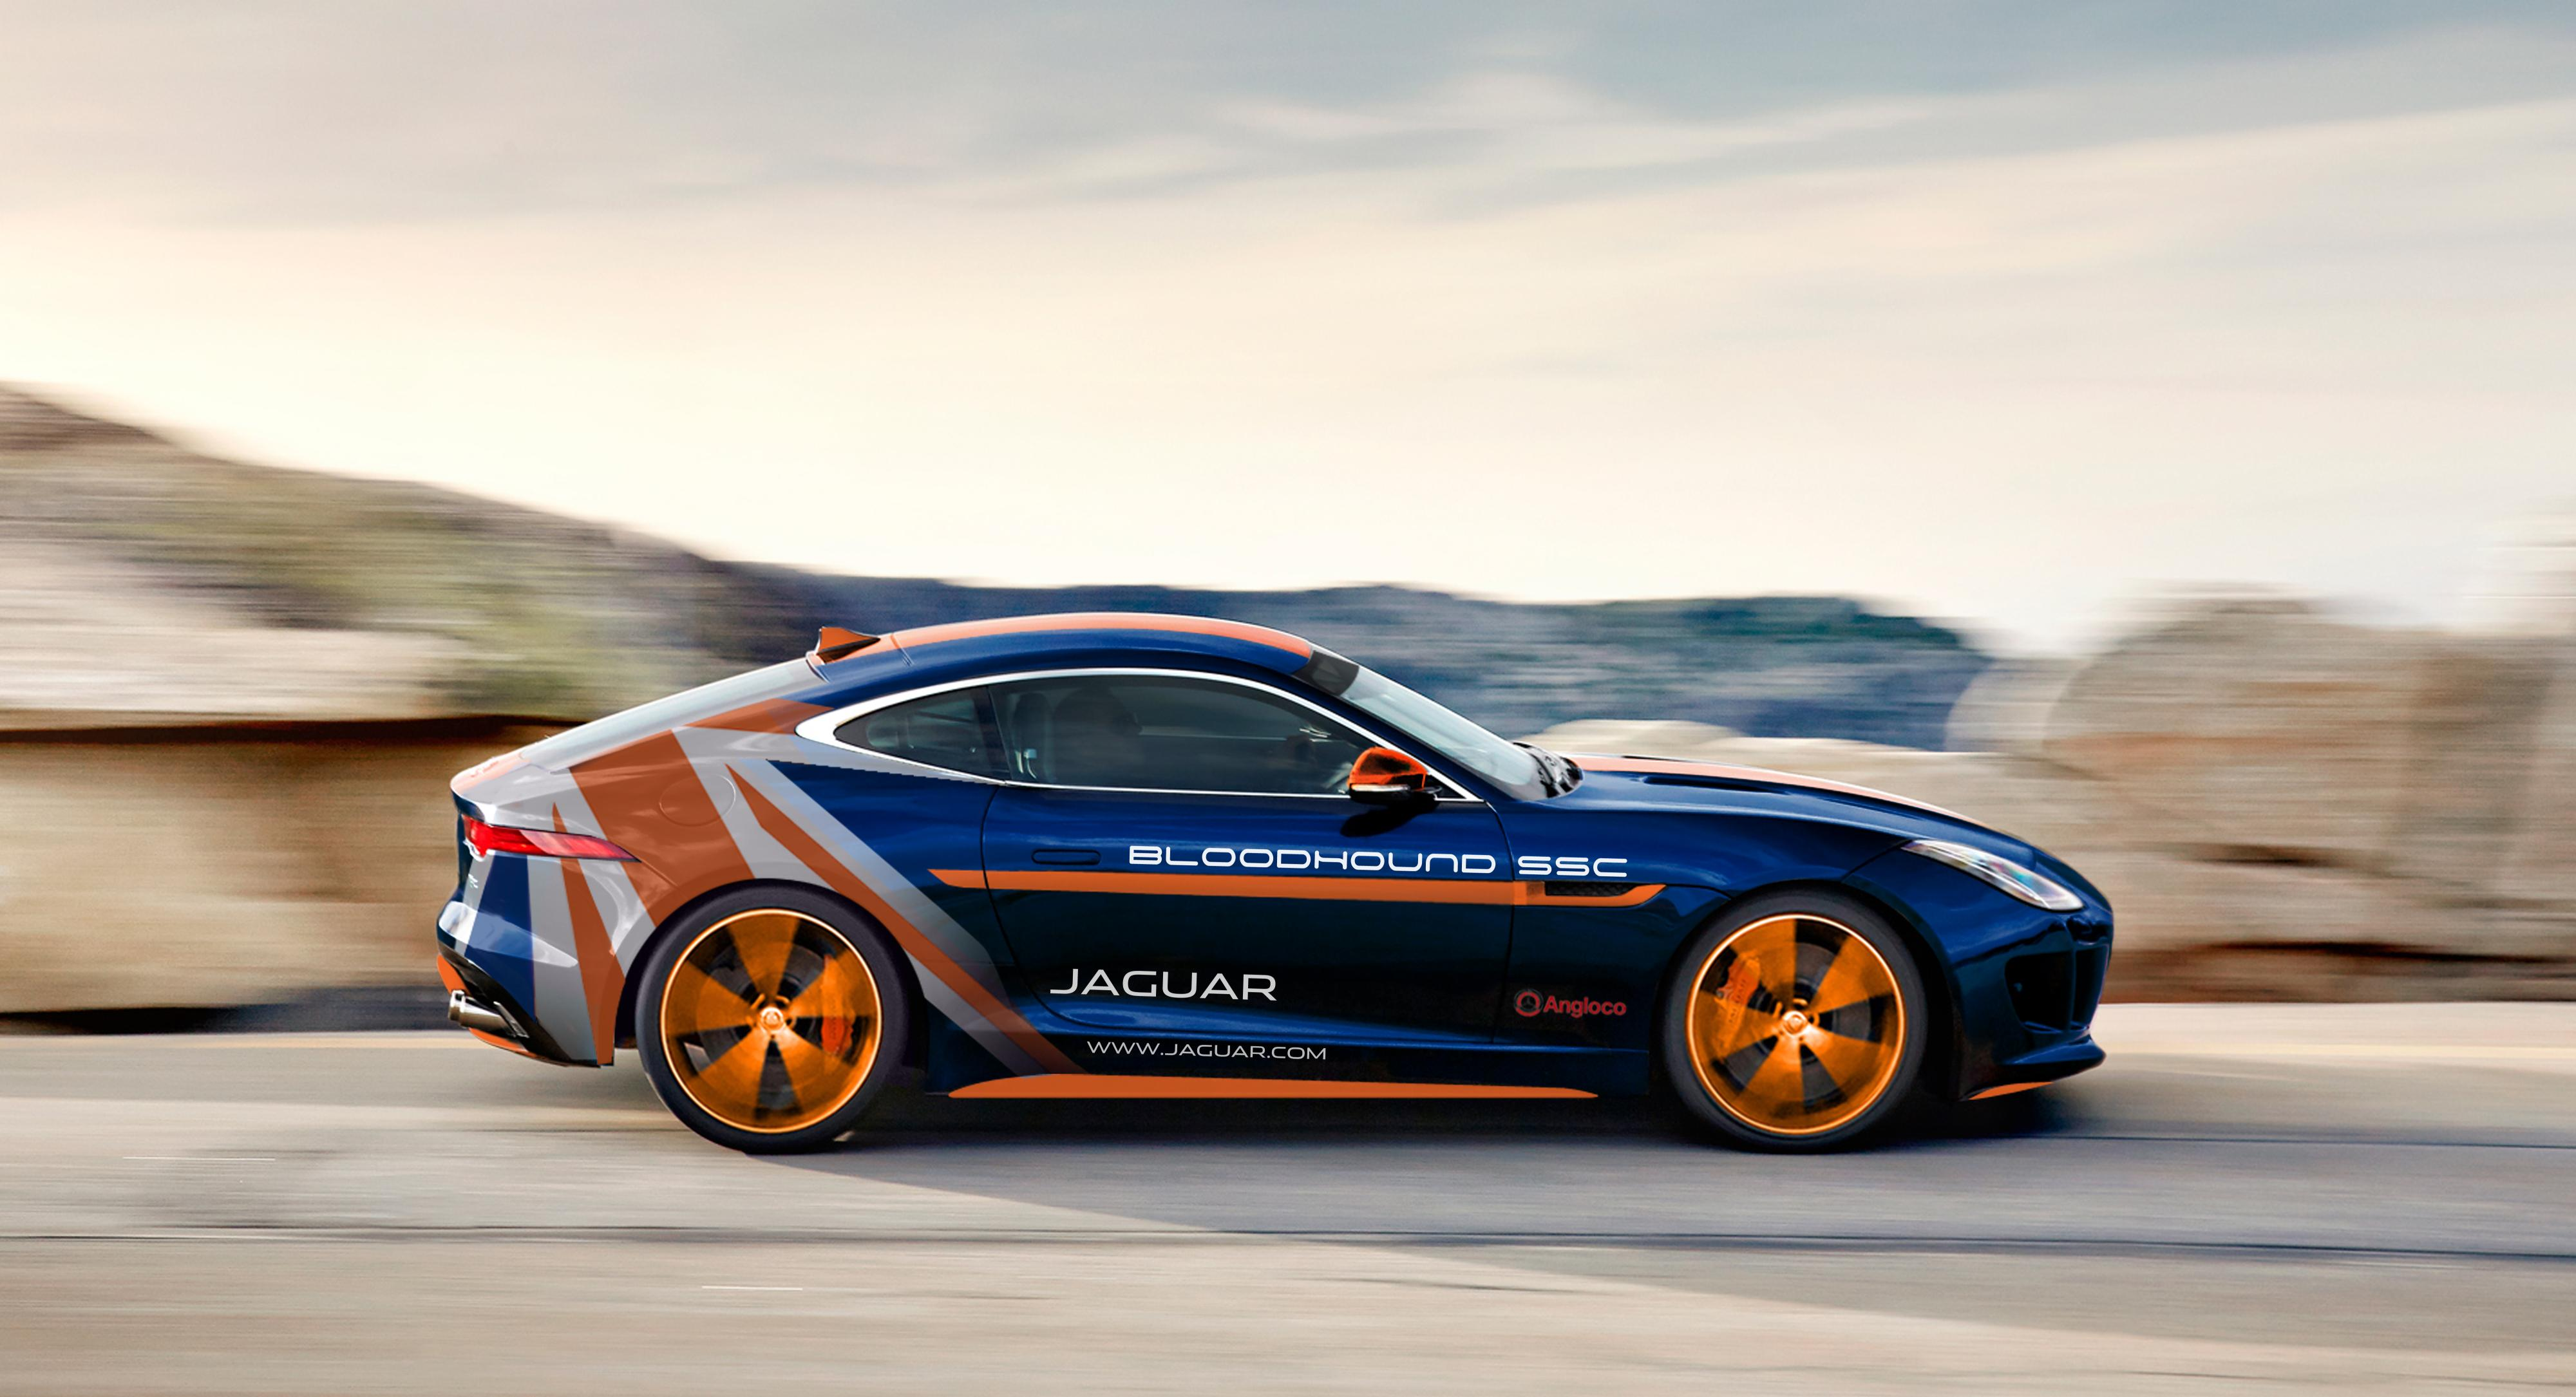 Jaguar F-TYPE Bloodhound RVV